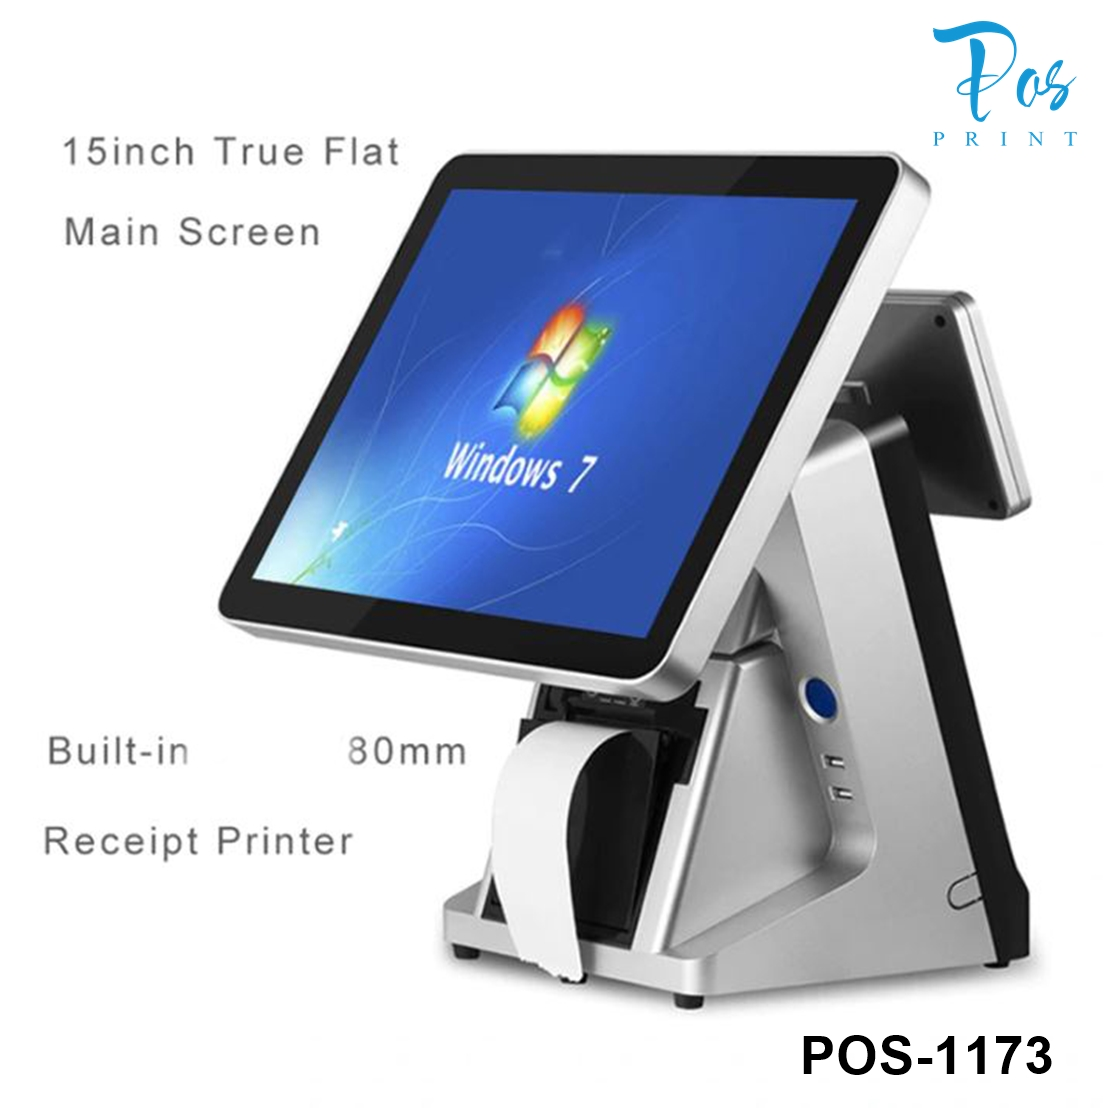 POSPRINT Point Of Sale System 15 Inch Led Touch Screen Capacity Pos System Window 7 With Inbuilt 80mm Printer